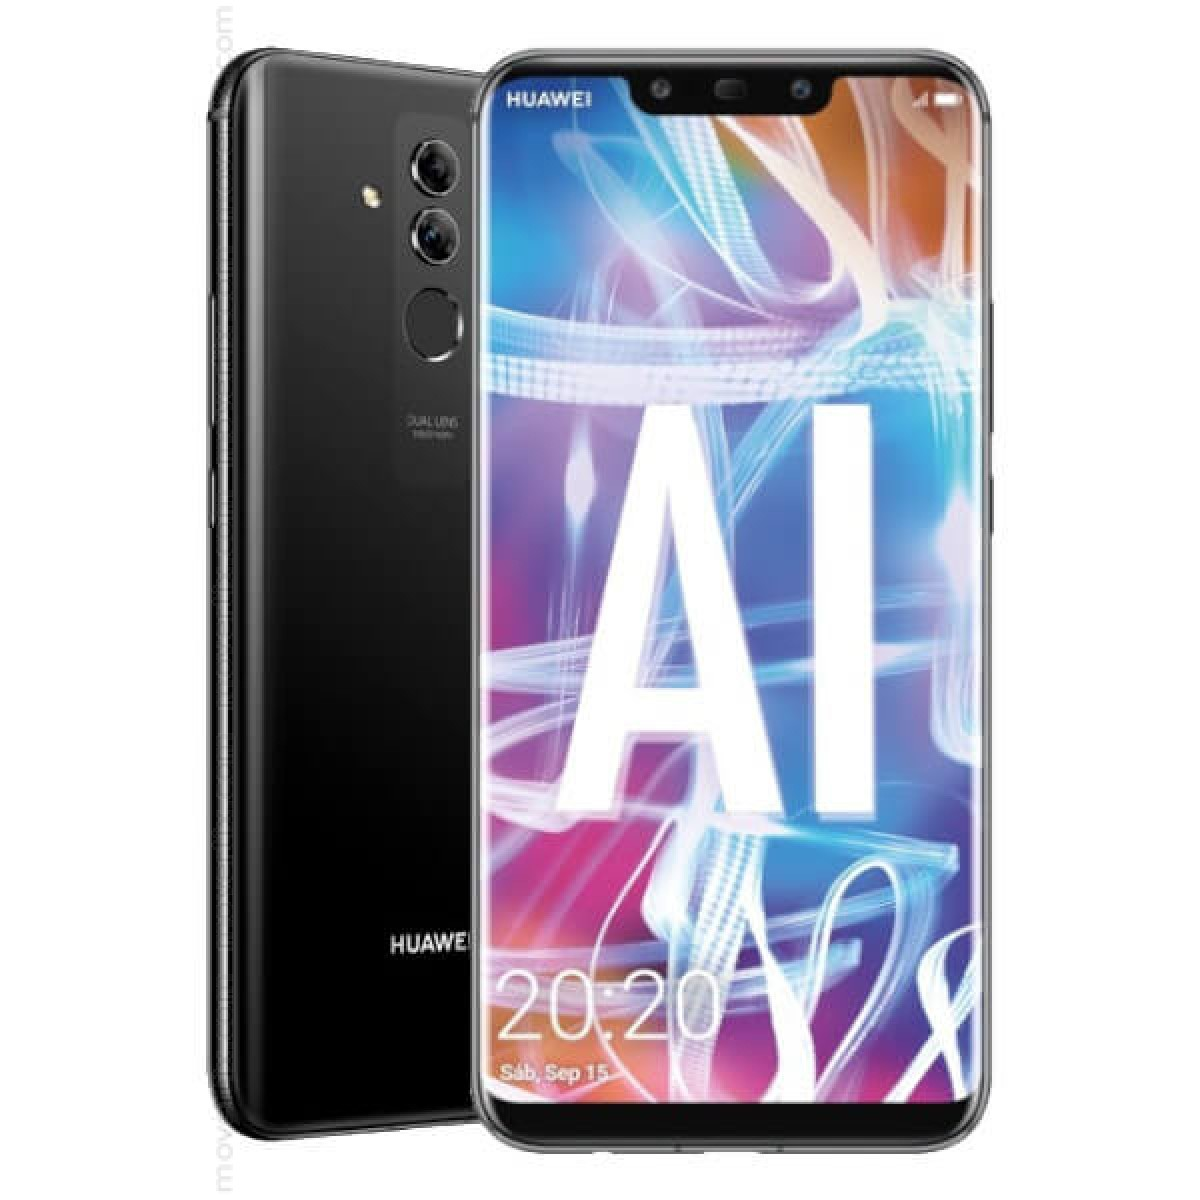 Huawei Mate 20 Lite Dual SIM Black 64GB and 4GB RAM (SNE-LX1)